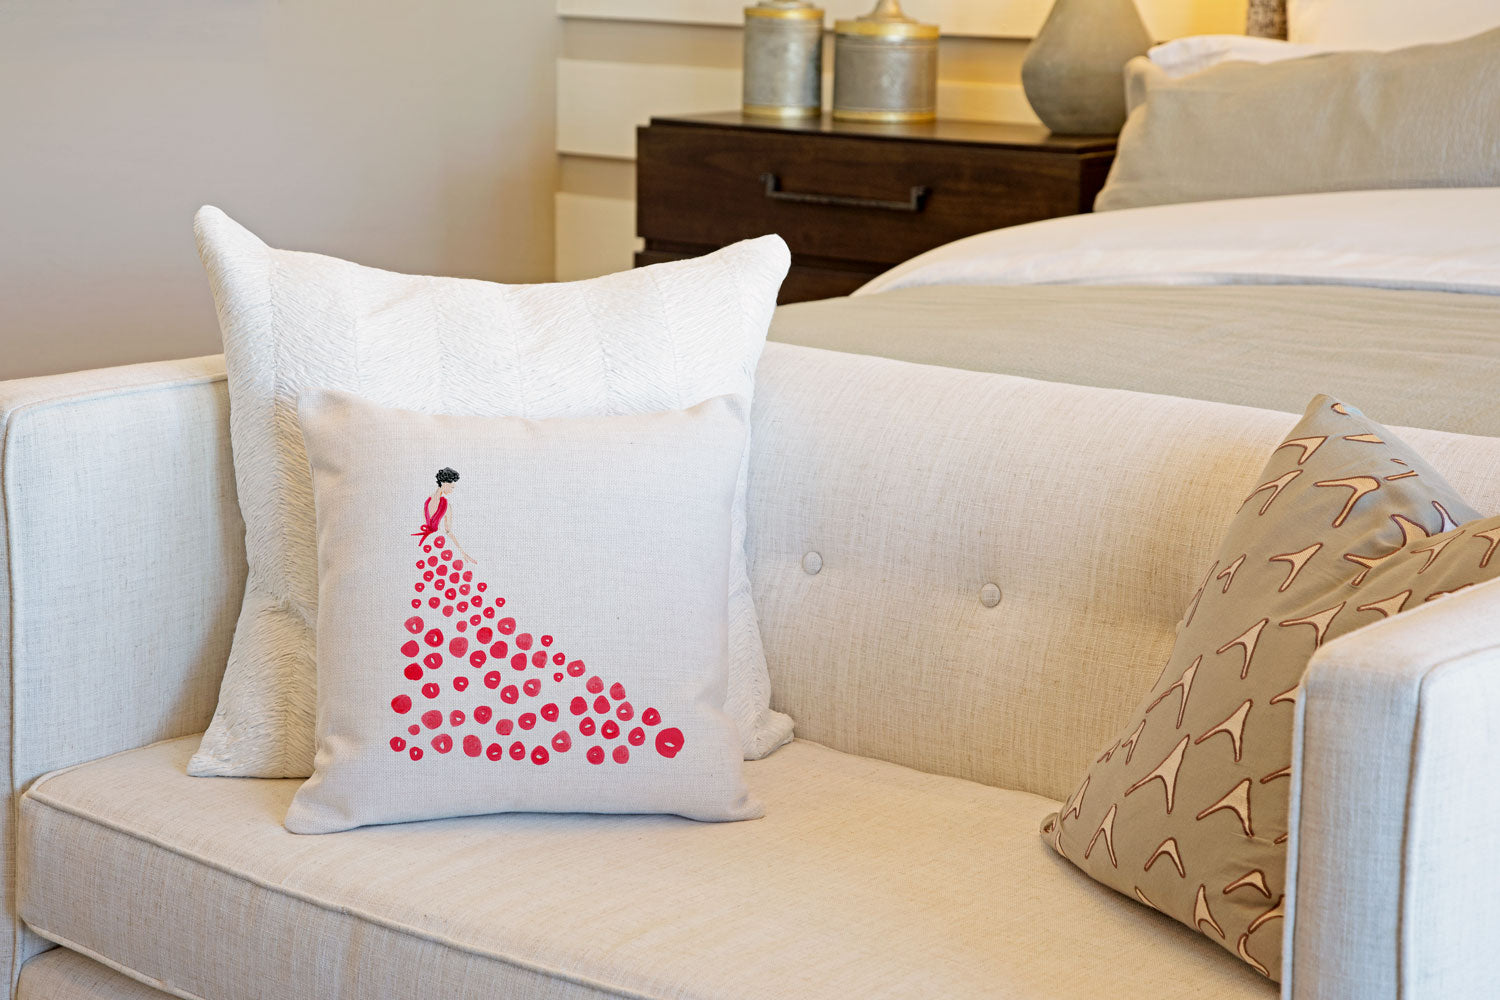 Fashionista Red Throw Pillow Cover - Fashion Illustrations Throw Pillow Cover Collection-Di Lewis